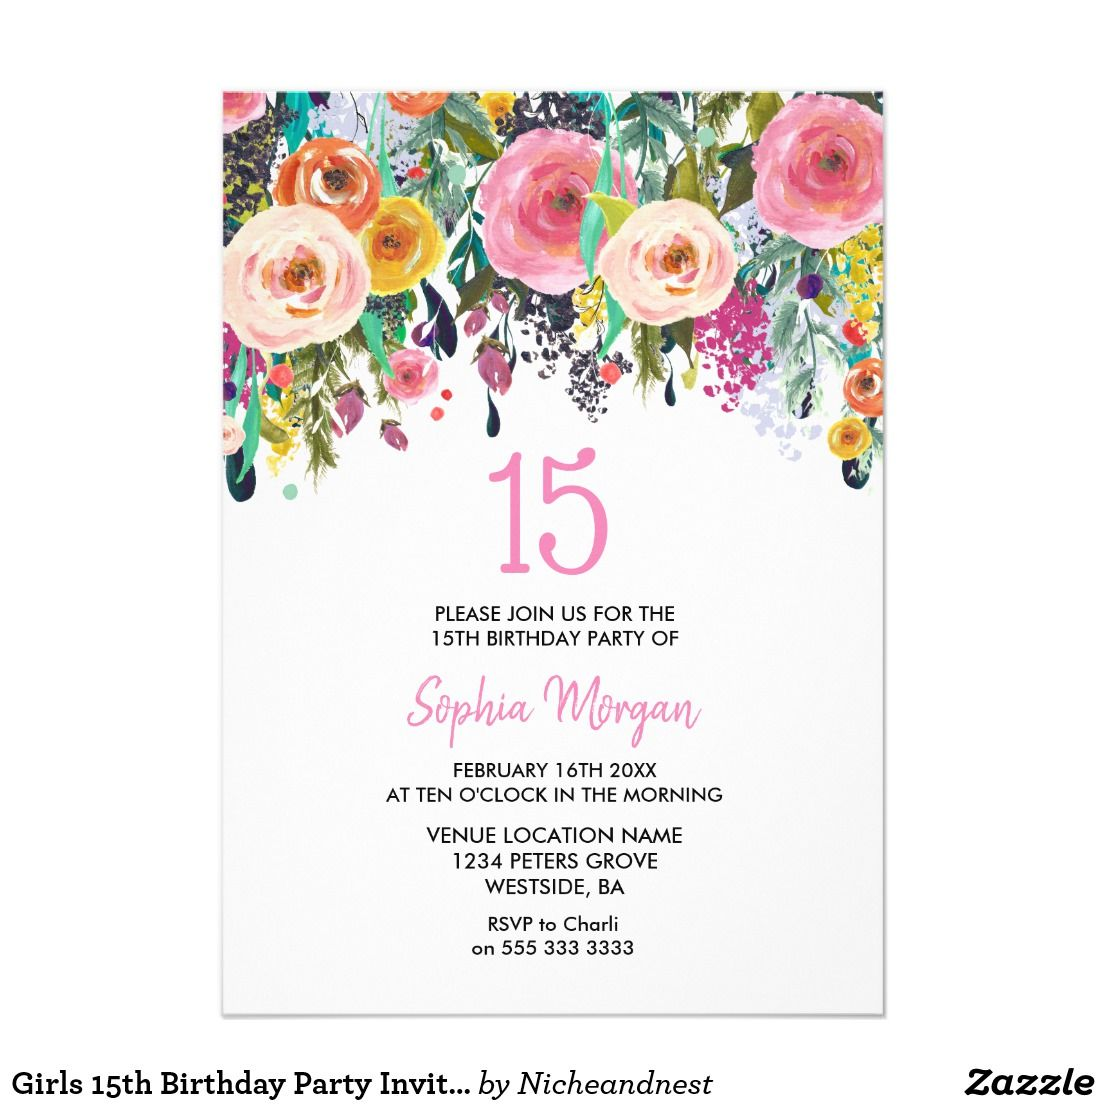 Girls 15th Birthday Party Invite Pink Flowers | Sweet 15 birthday ...